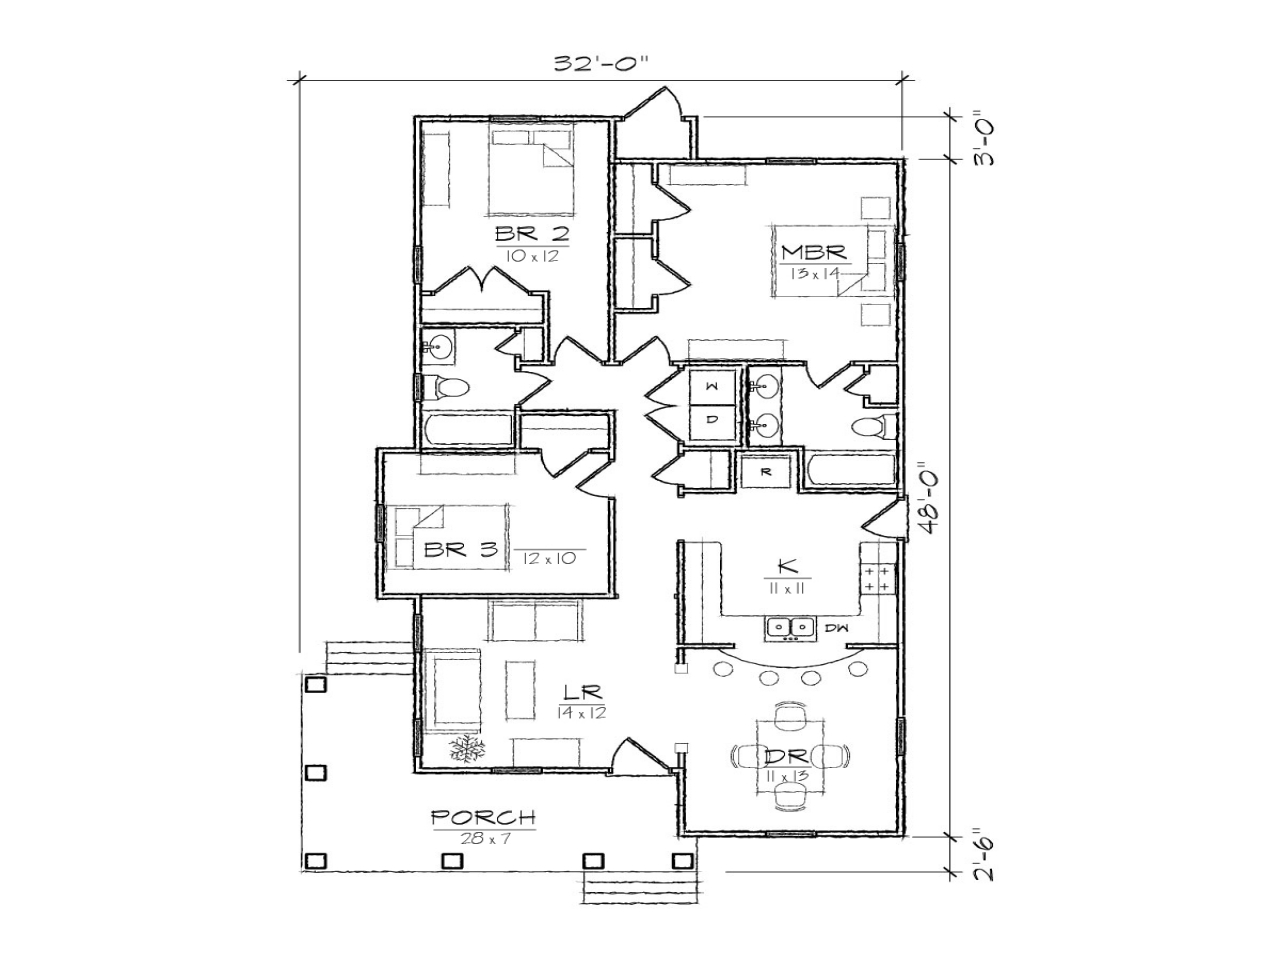 Bungalow House Floor Plans Two Story House Floor Plans